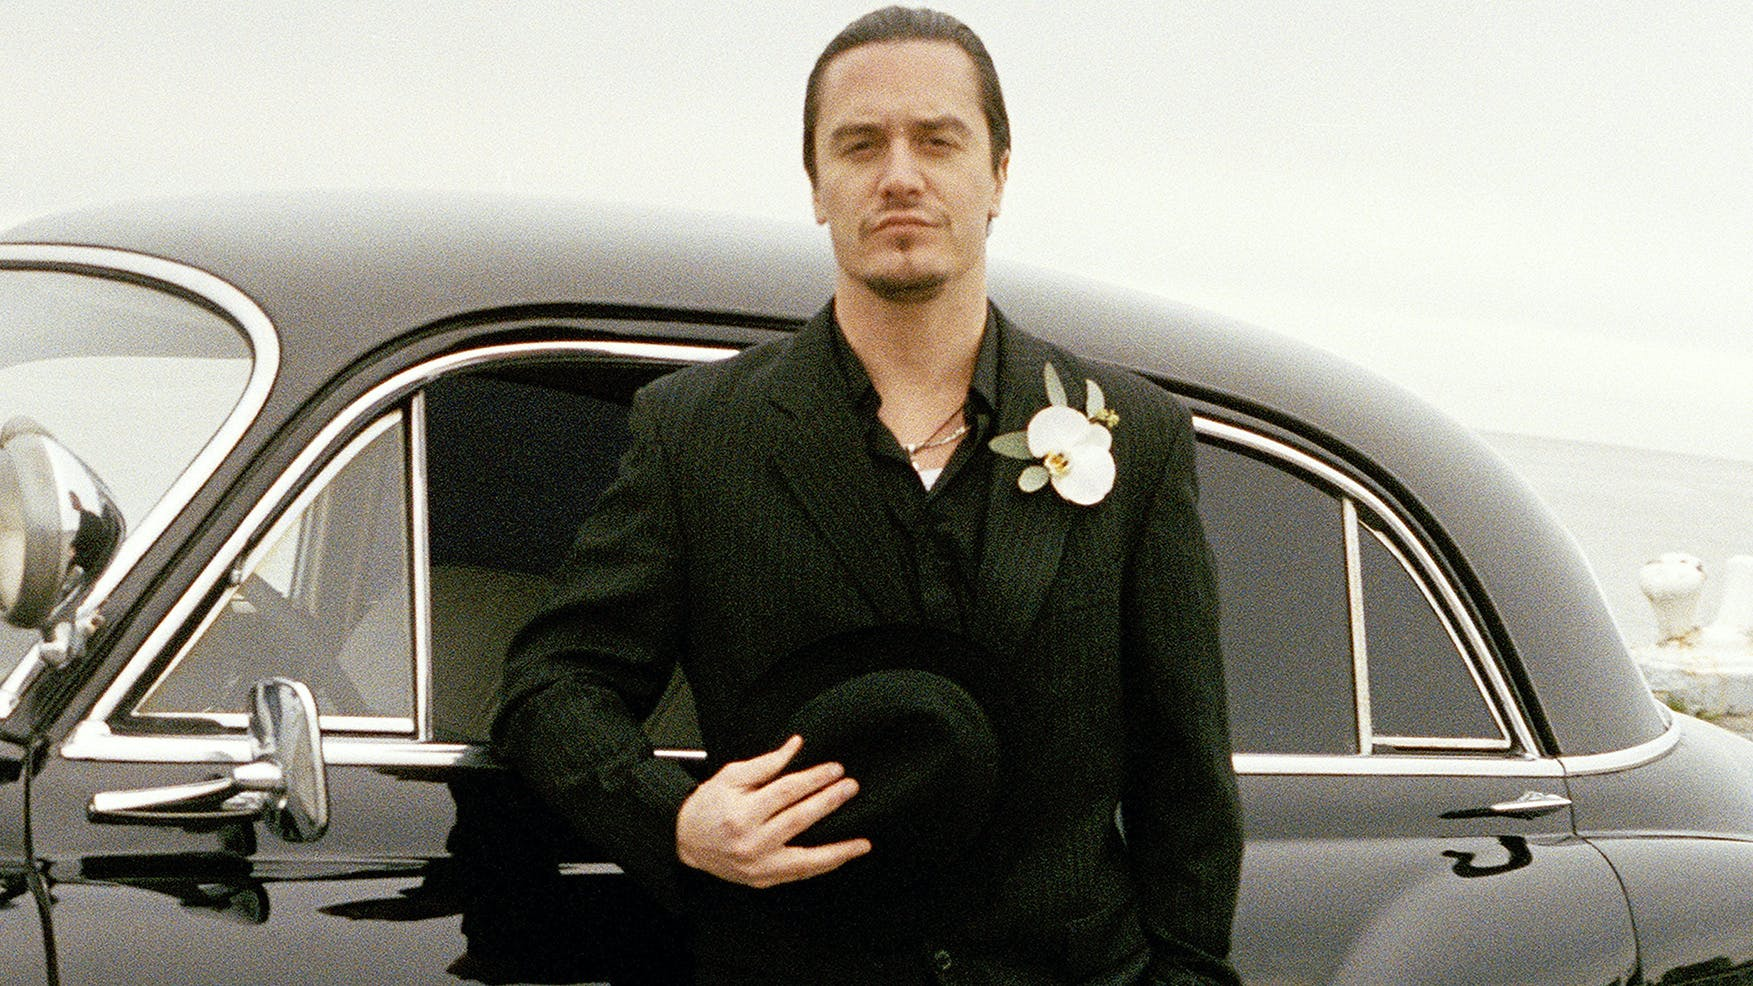 Mike Patton To Sing National Anthem at Tonight's NFL Playoff Game